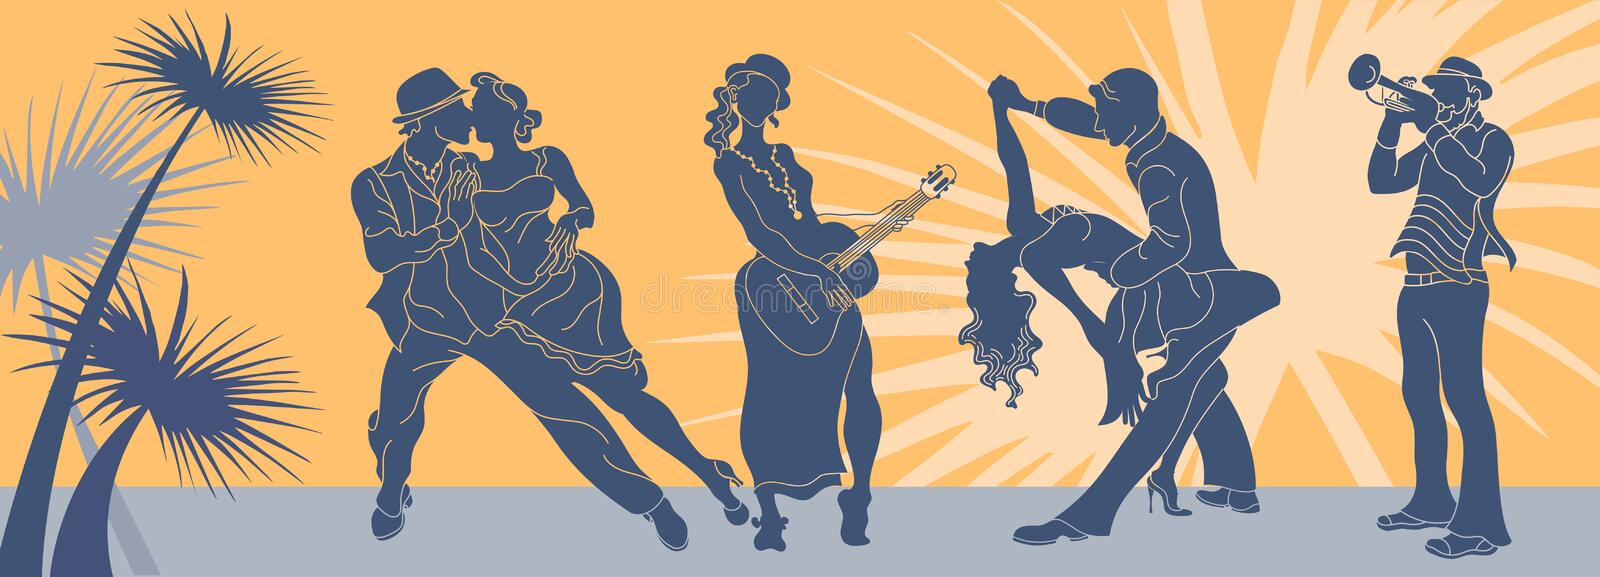 Salsa dance vector.Tango couple vector. Couple dancing salsa. Argentine tango.Web background salsa latino.Salsa music party banner stock illustration